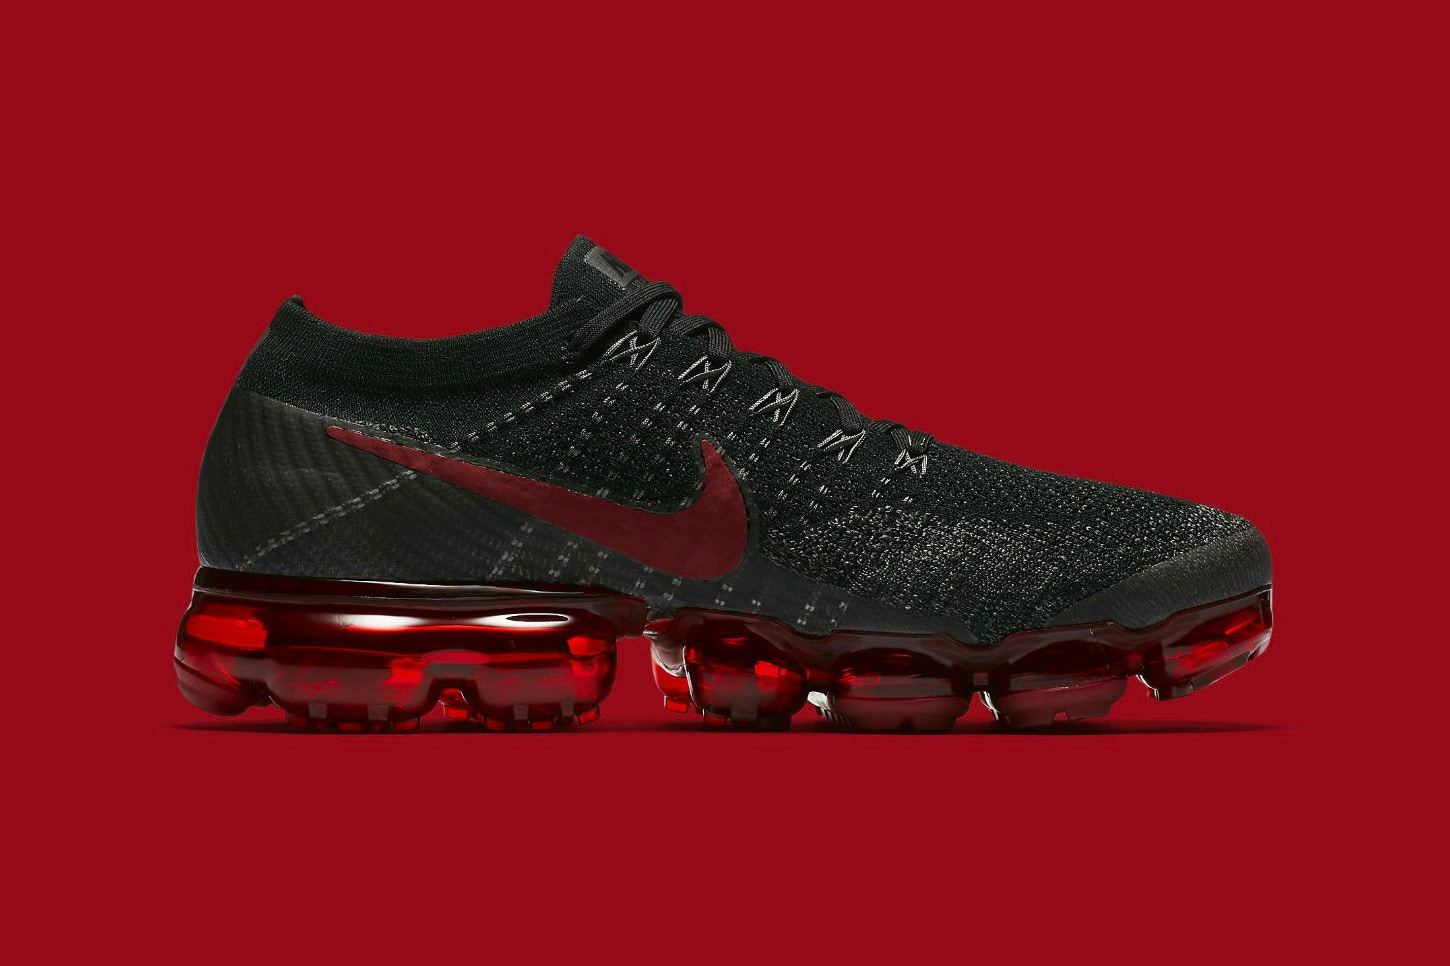 Nike Vapormax Flyknit Black Red Size 13. 849558-013 air max 2017 90 97